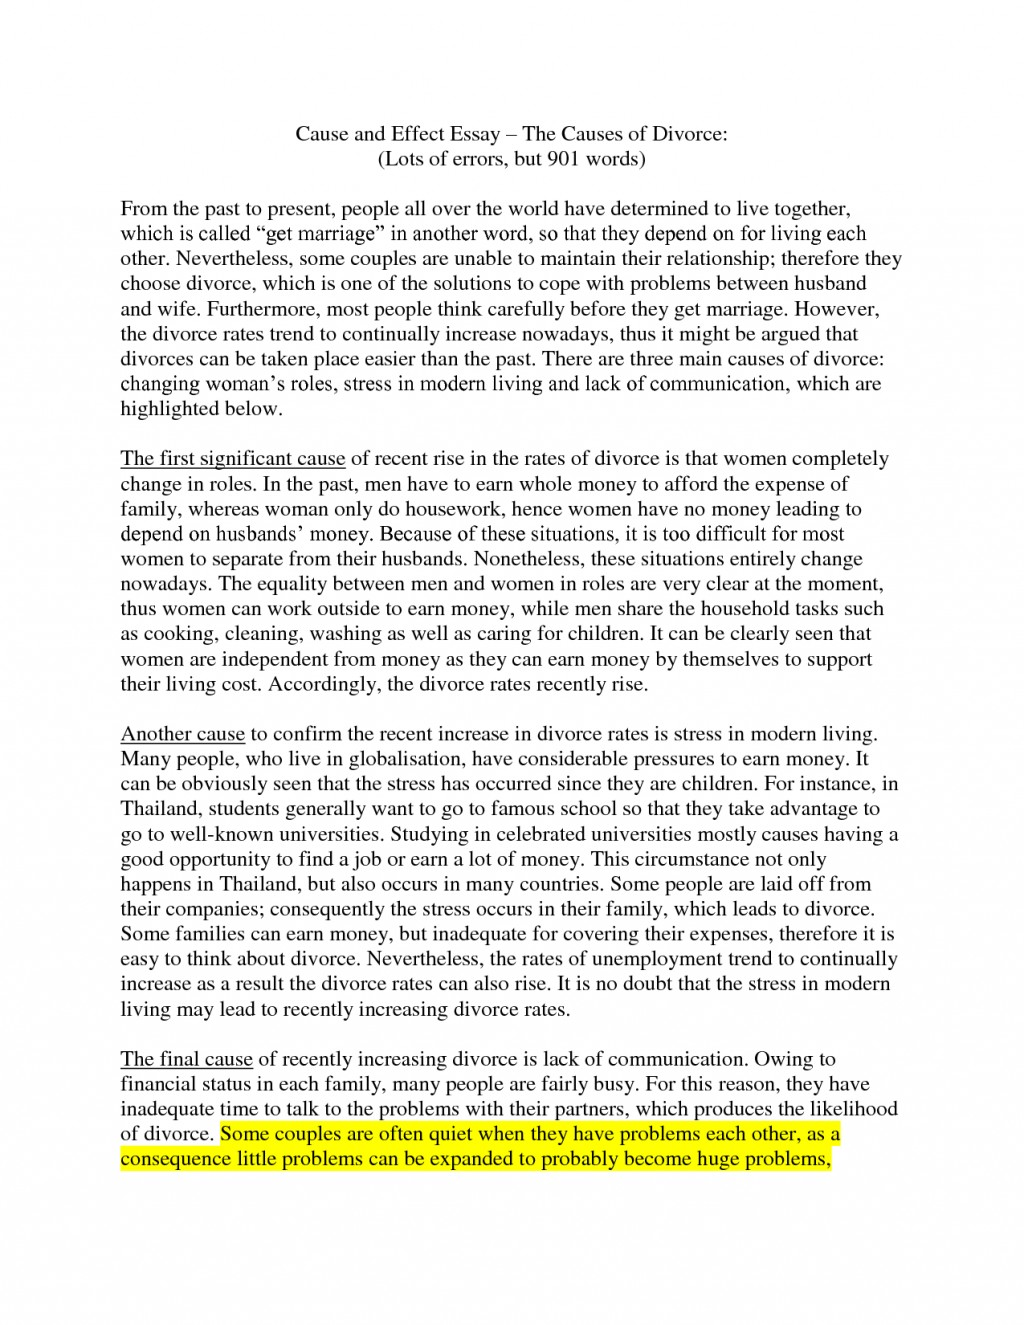 007 Essay Example How Do You Write Cause And Effect Writing Ppt V5kyg Examples Tips For Pdf Outline On Divorce Steps To Help With Powerpoint Surprising Expository Topics Large